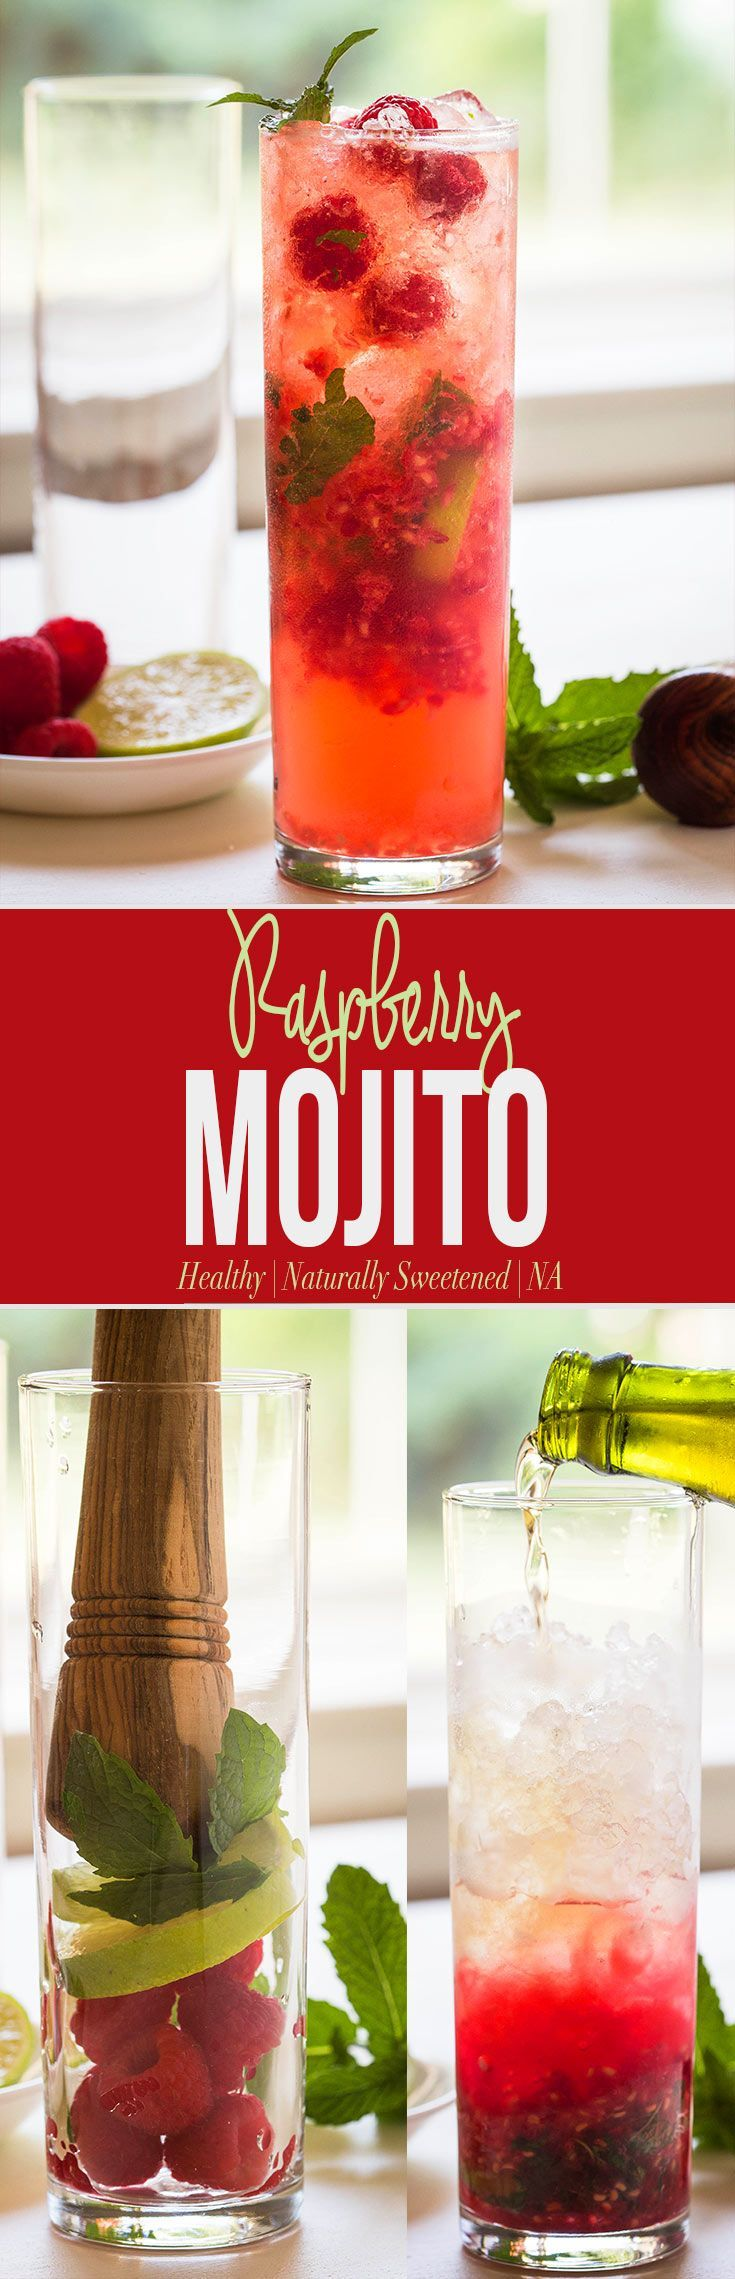 Non Alcoholic Raspberry Mojito - make this delicious drink using fresh raspberries, lime, mint, and sparkling apple cider. It will make you crave for more.